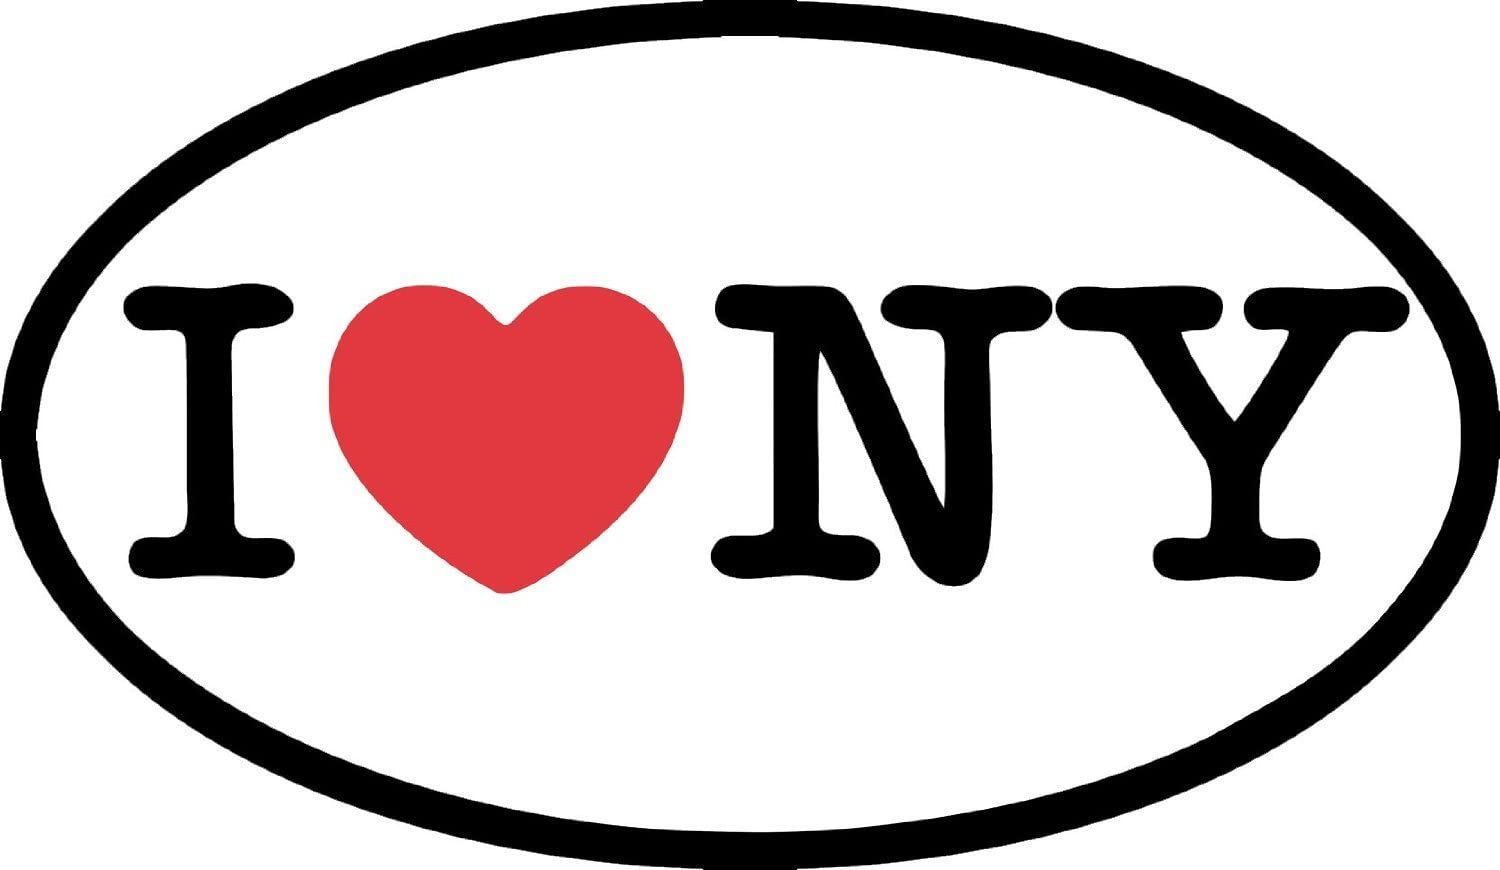 Indigos Ug Aufkleber Autoaufkleber Jdm Die Hart I Love Ny Bumper Sticker Heart New York Oval Car Decal 127mmx76mm Auto